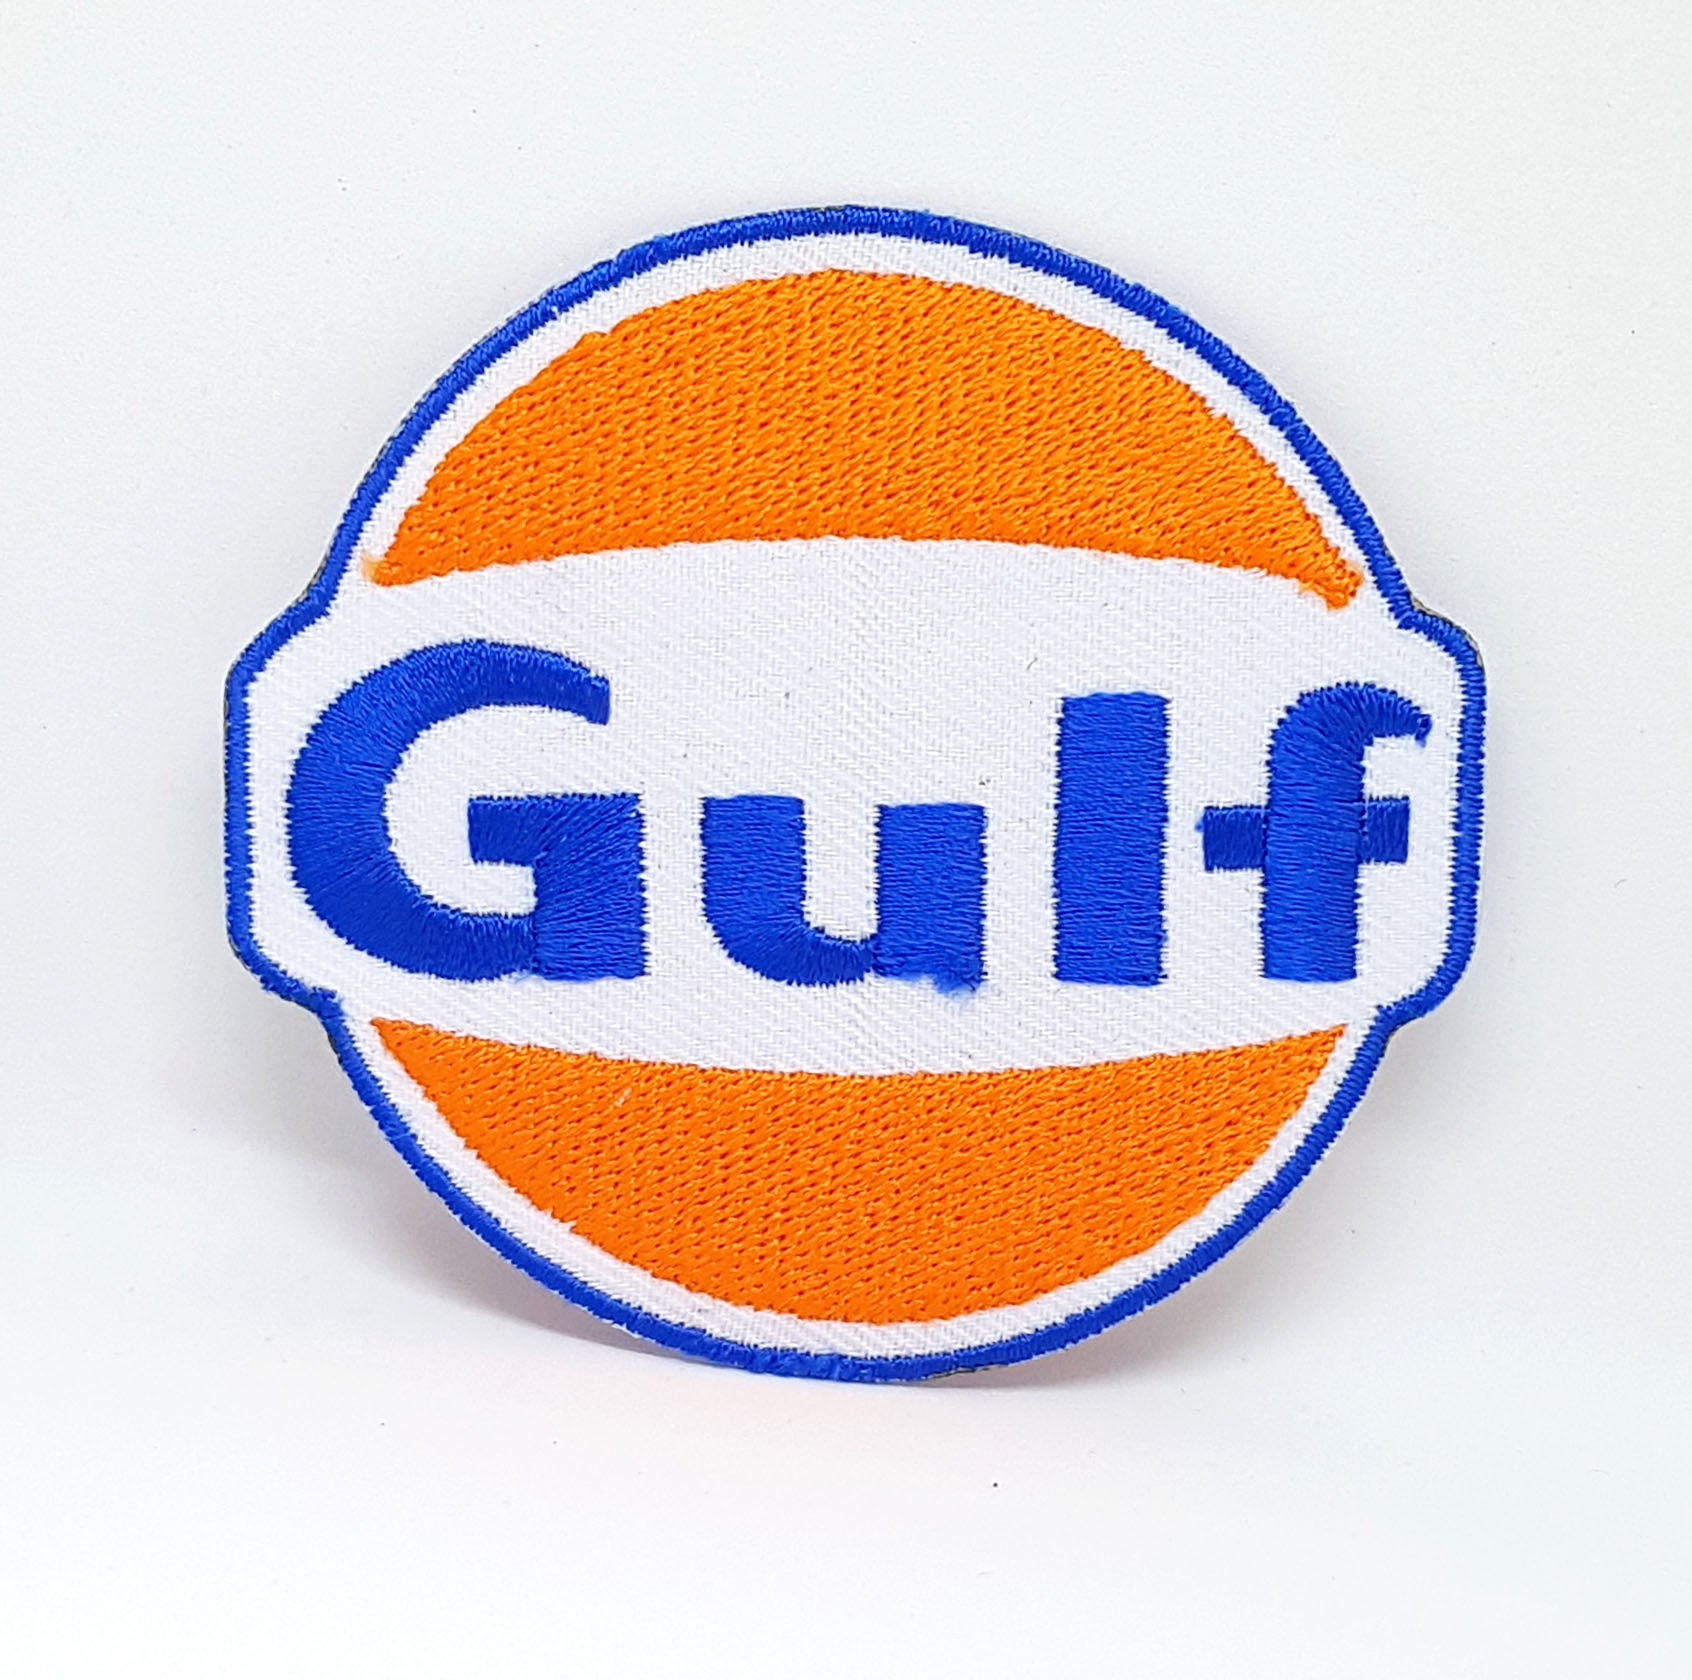 Gulf Oil Gasoline Vintage Biker F1 Racing Iron Sew on Embroidered Patch - Patches-Badges